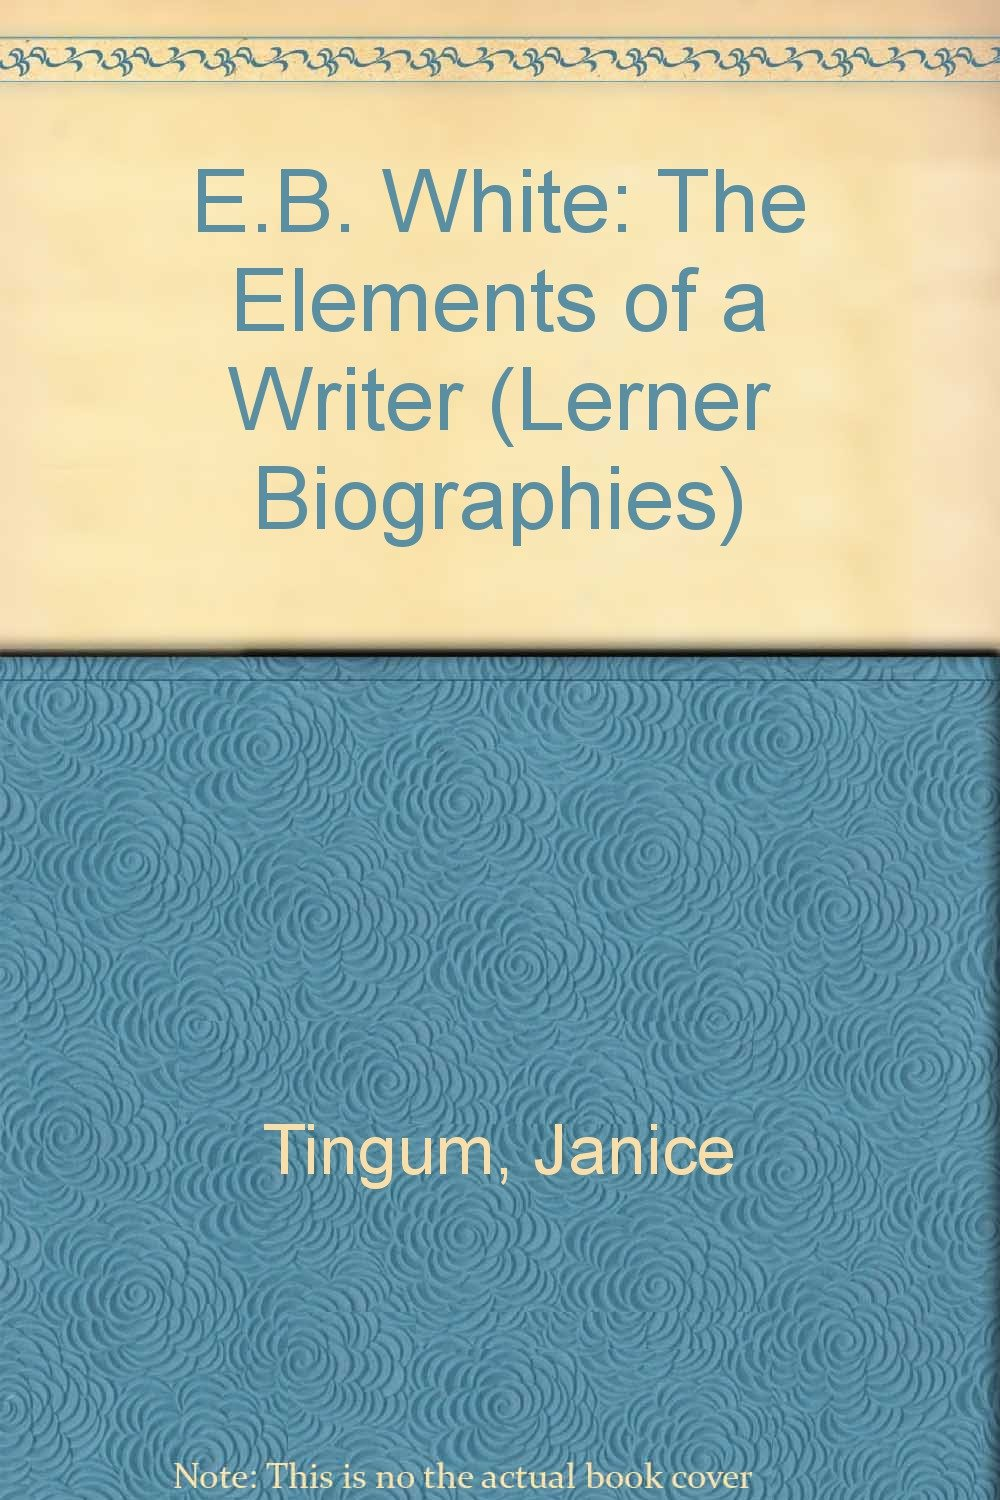 E.B. White: The Elements of a Writer (Lerner Biographies)